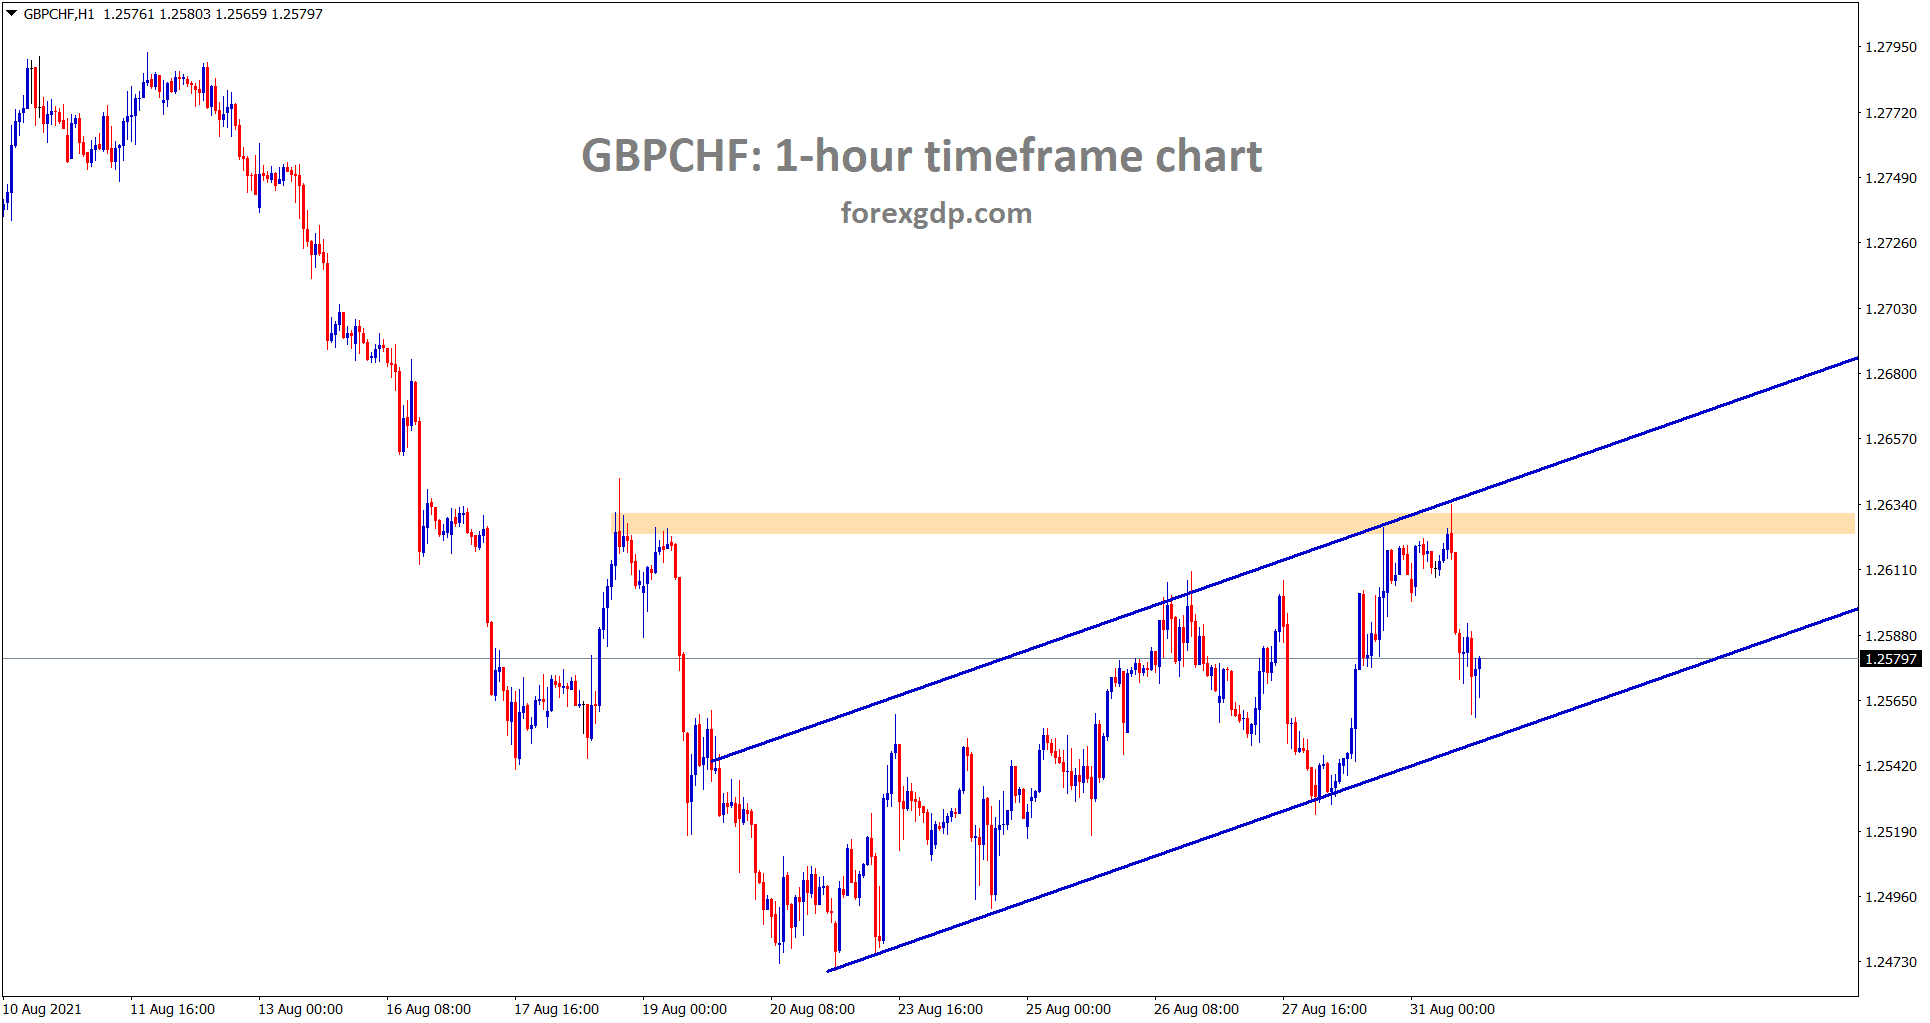 GBPCHF is moving in an Ascending channel in the hourly timeframe chart